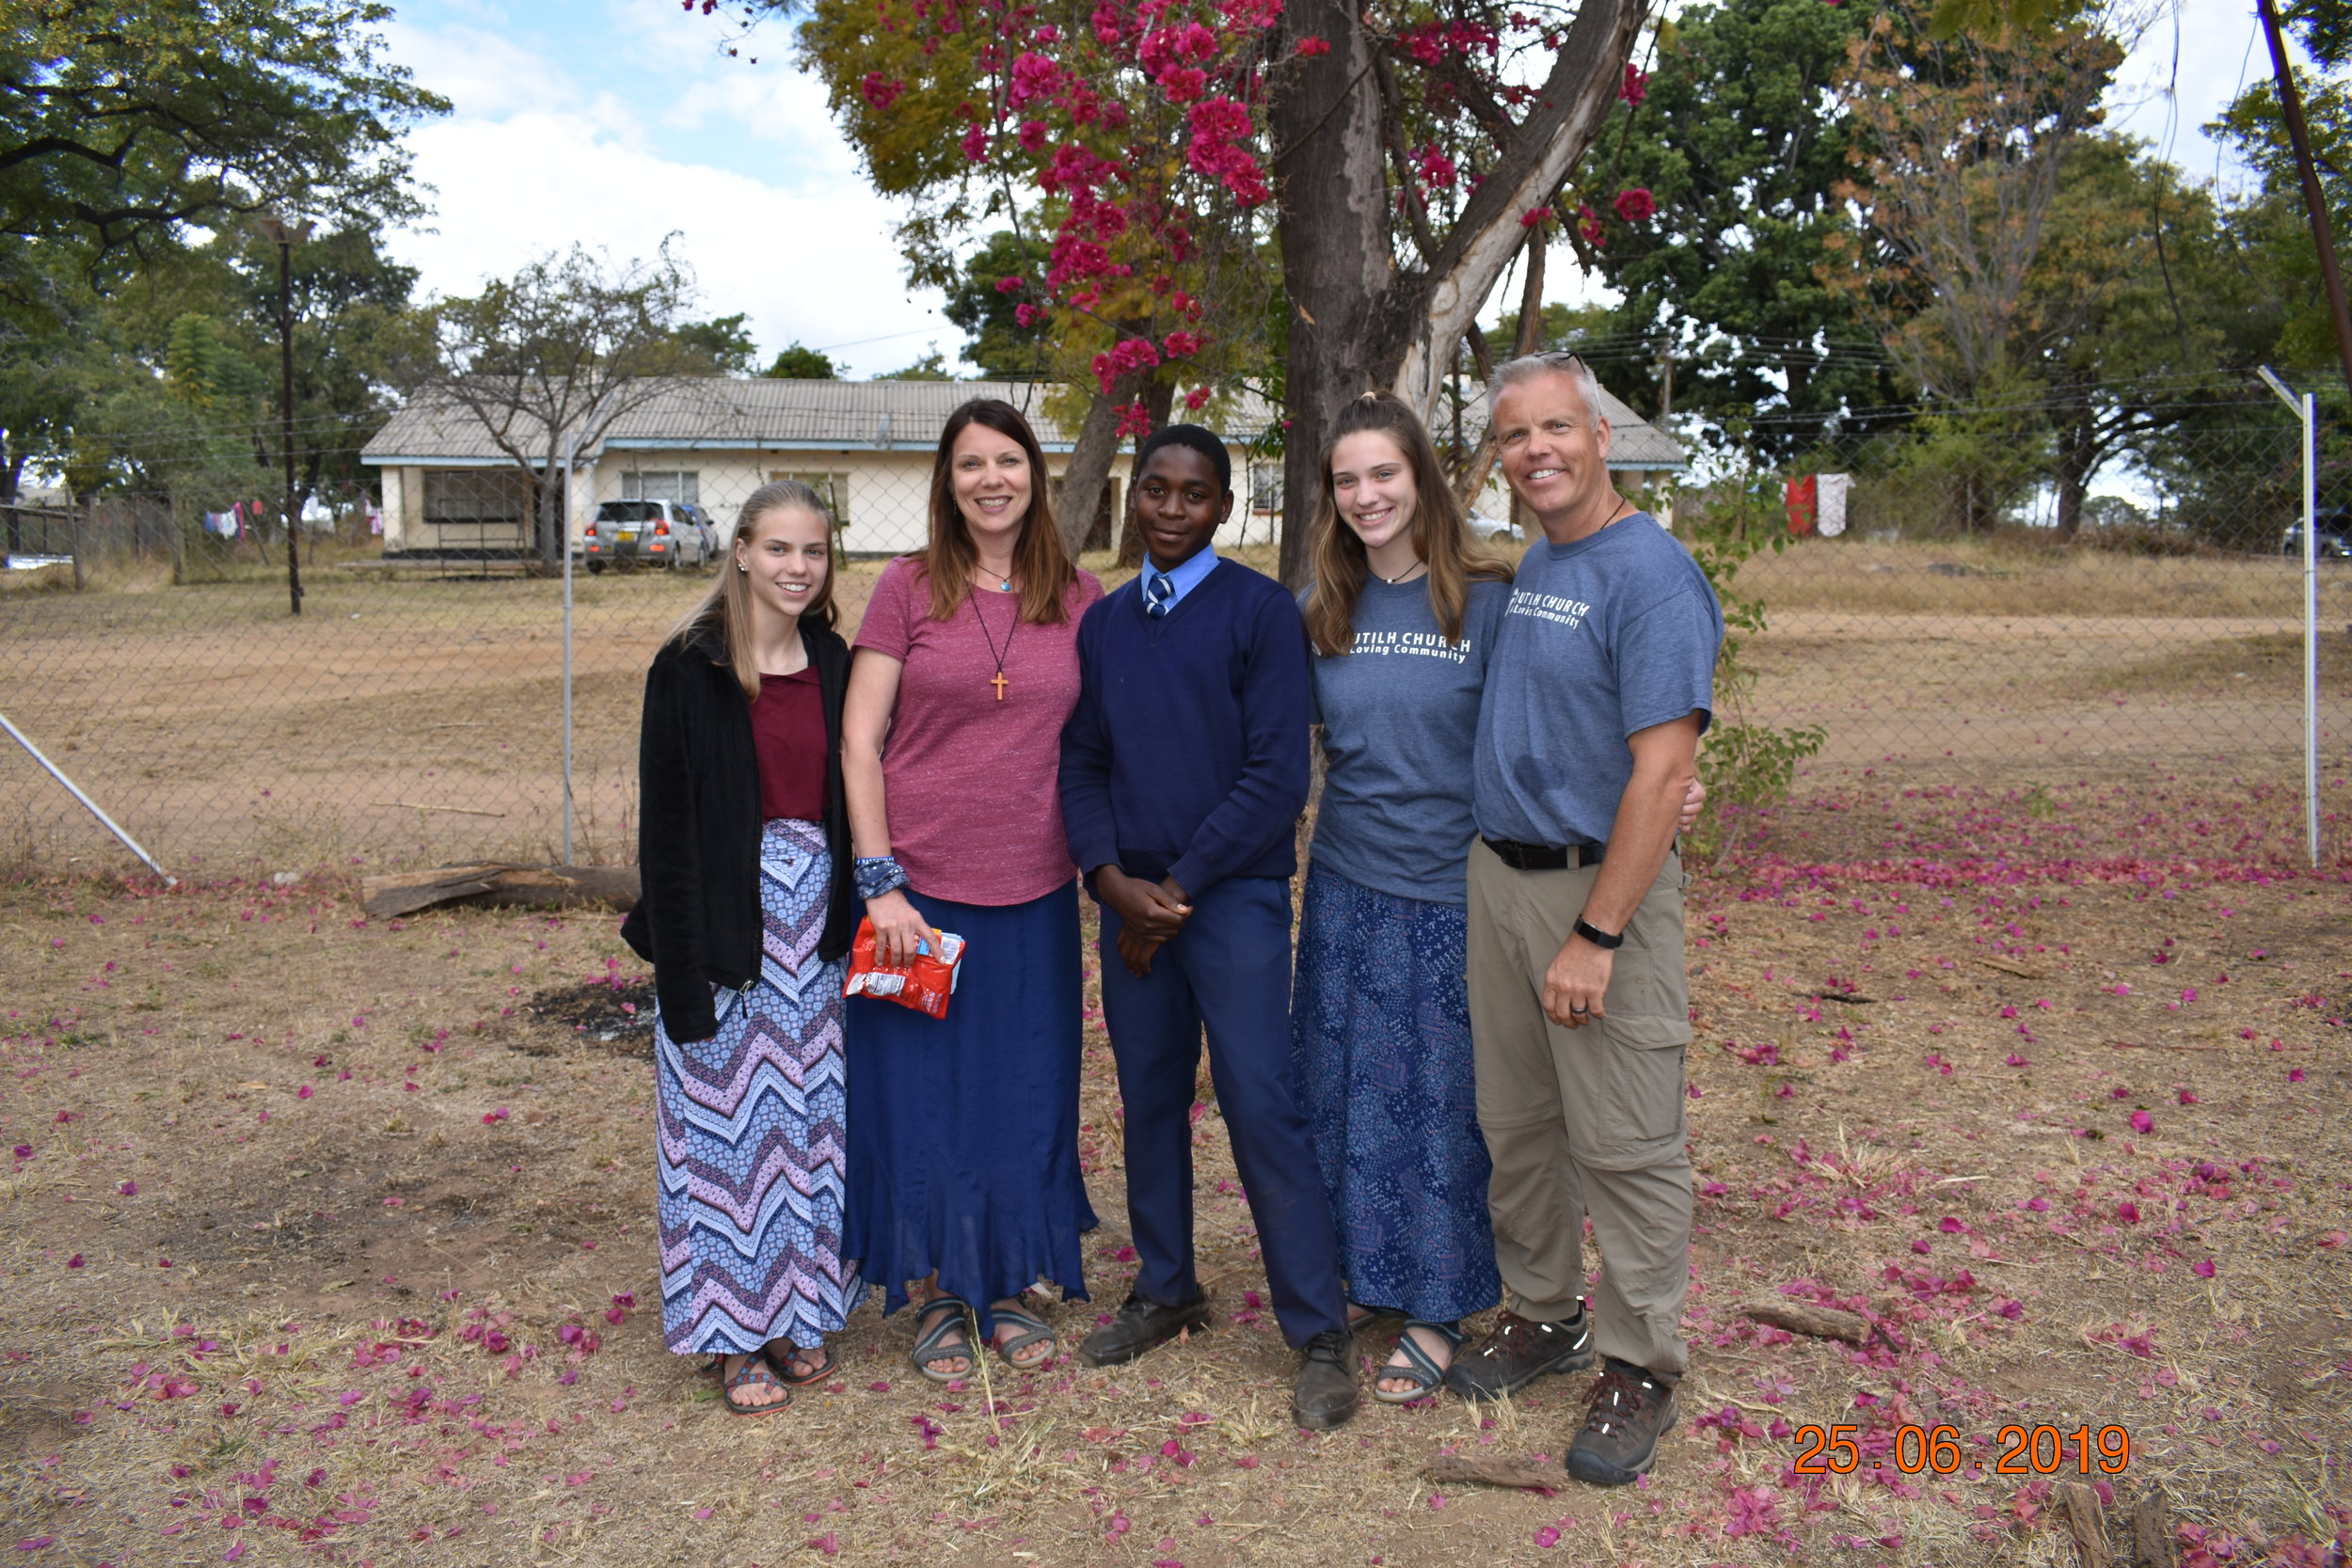 The Ekstam family meets the student they have sponsored in Nyadire.